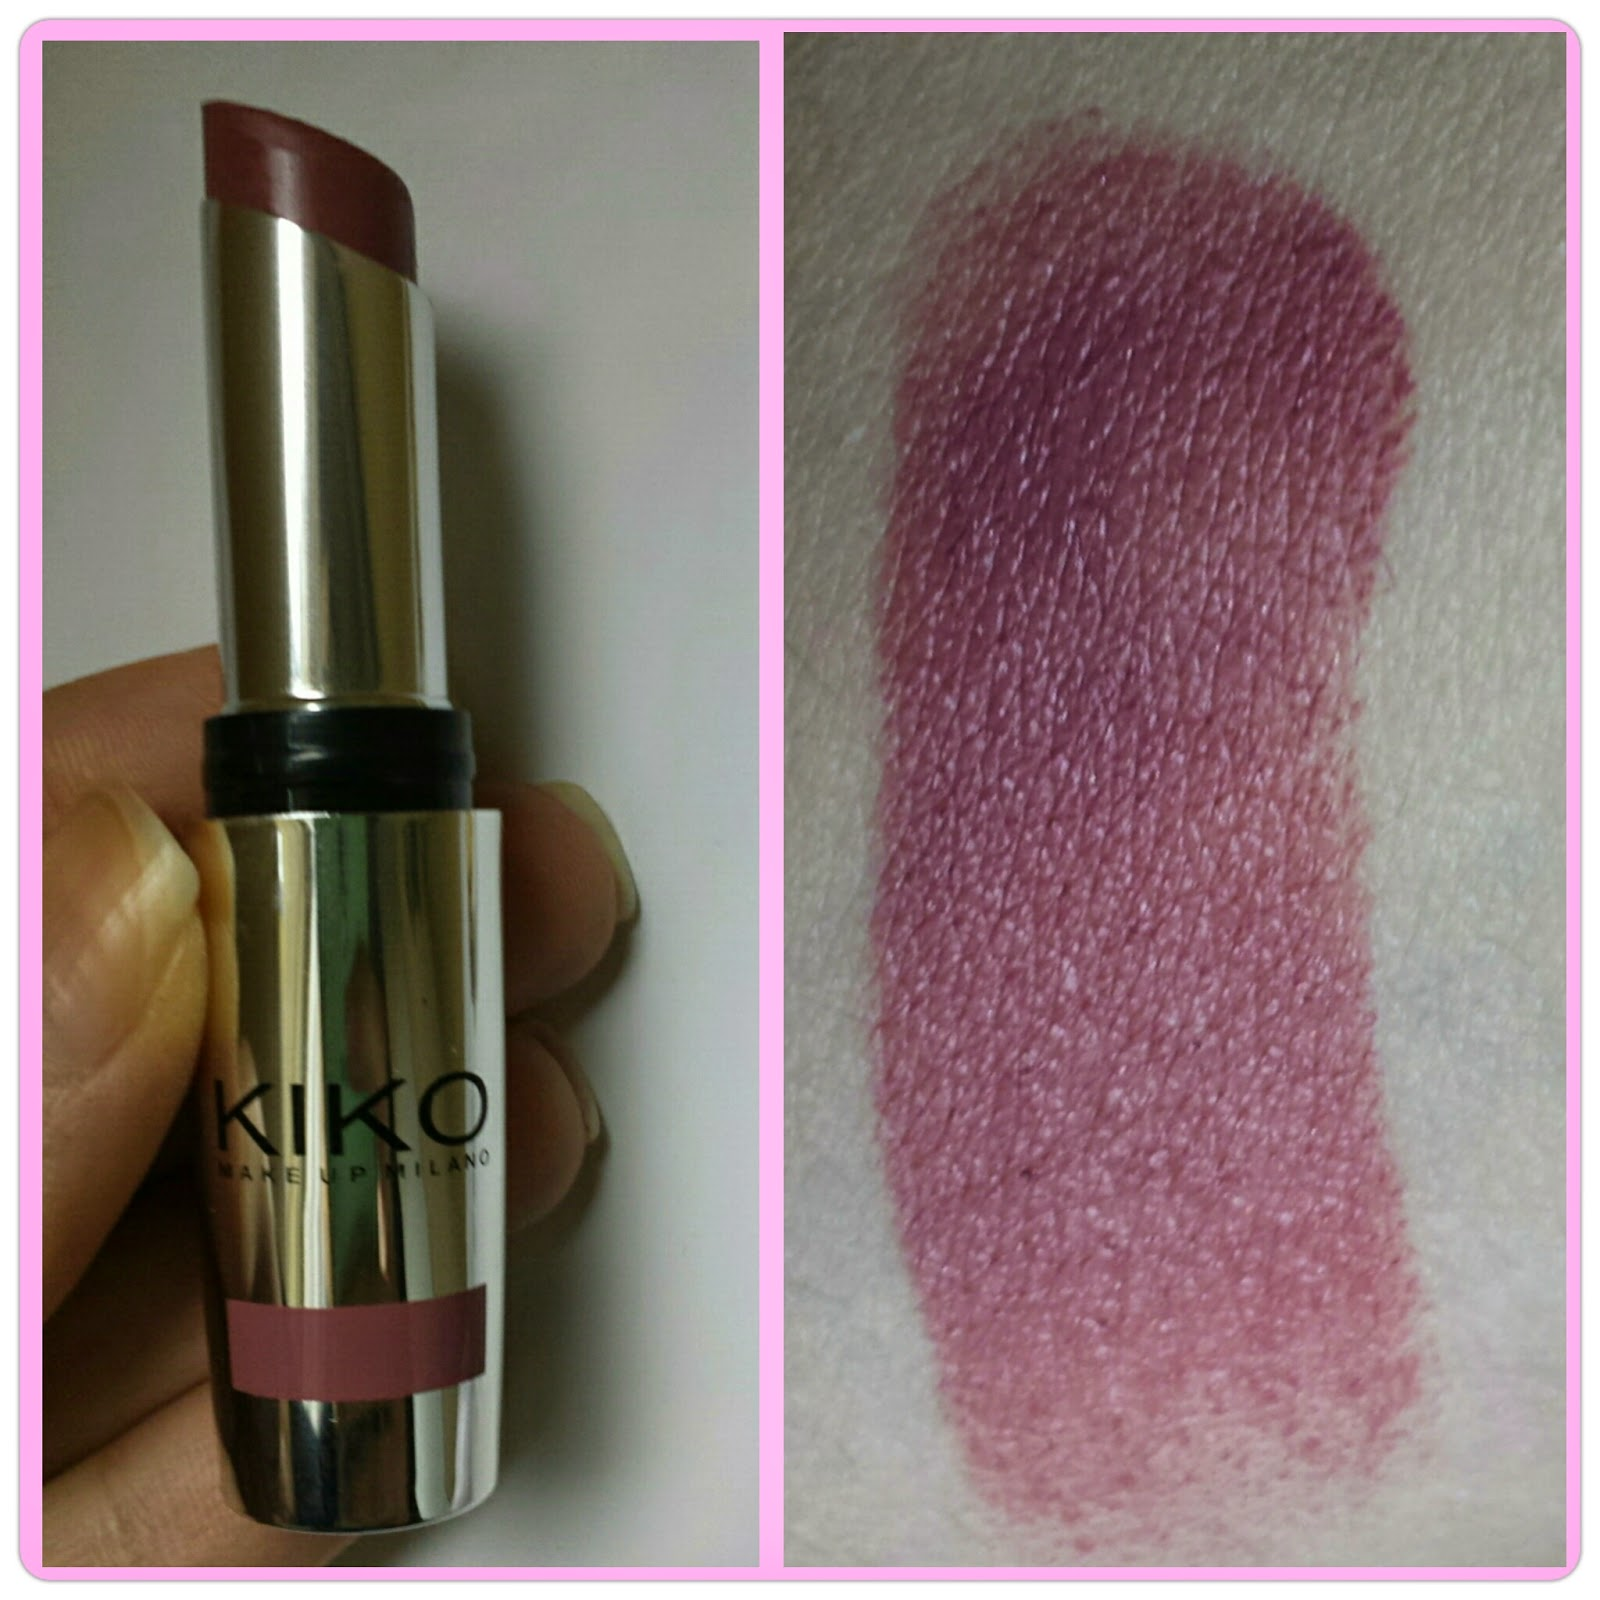 Top Sailorsmakeup's World: KIKO COSMETICS - Lipstick Swatches e Review SA99